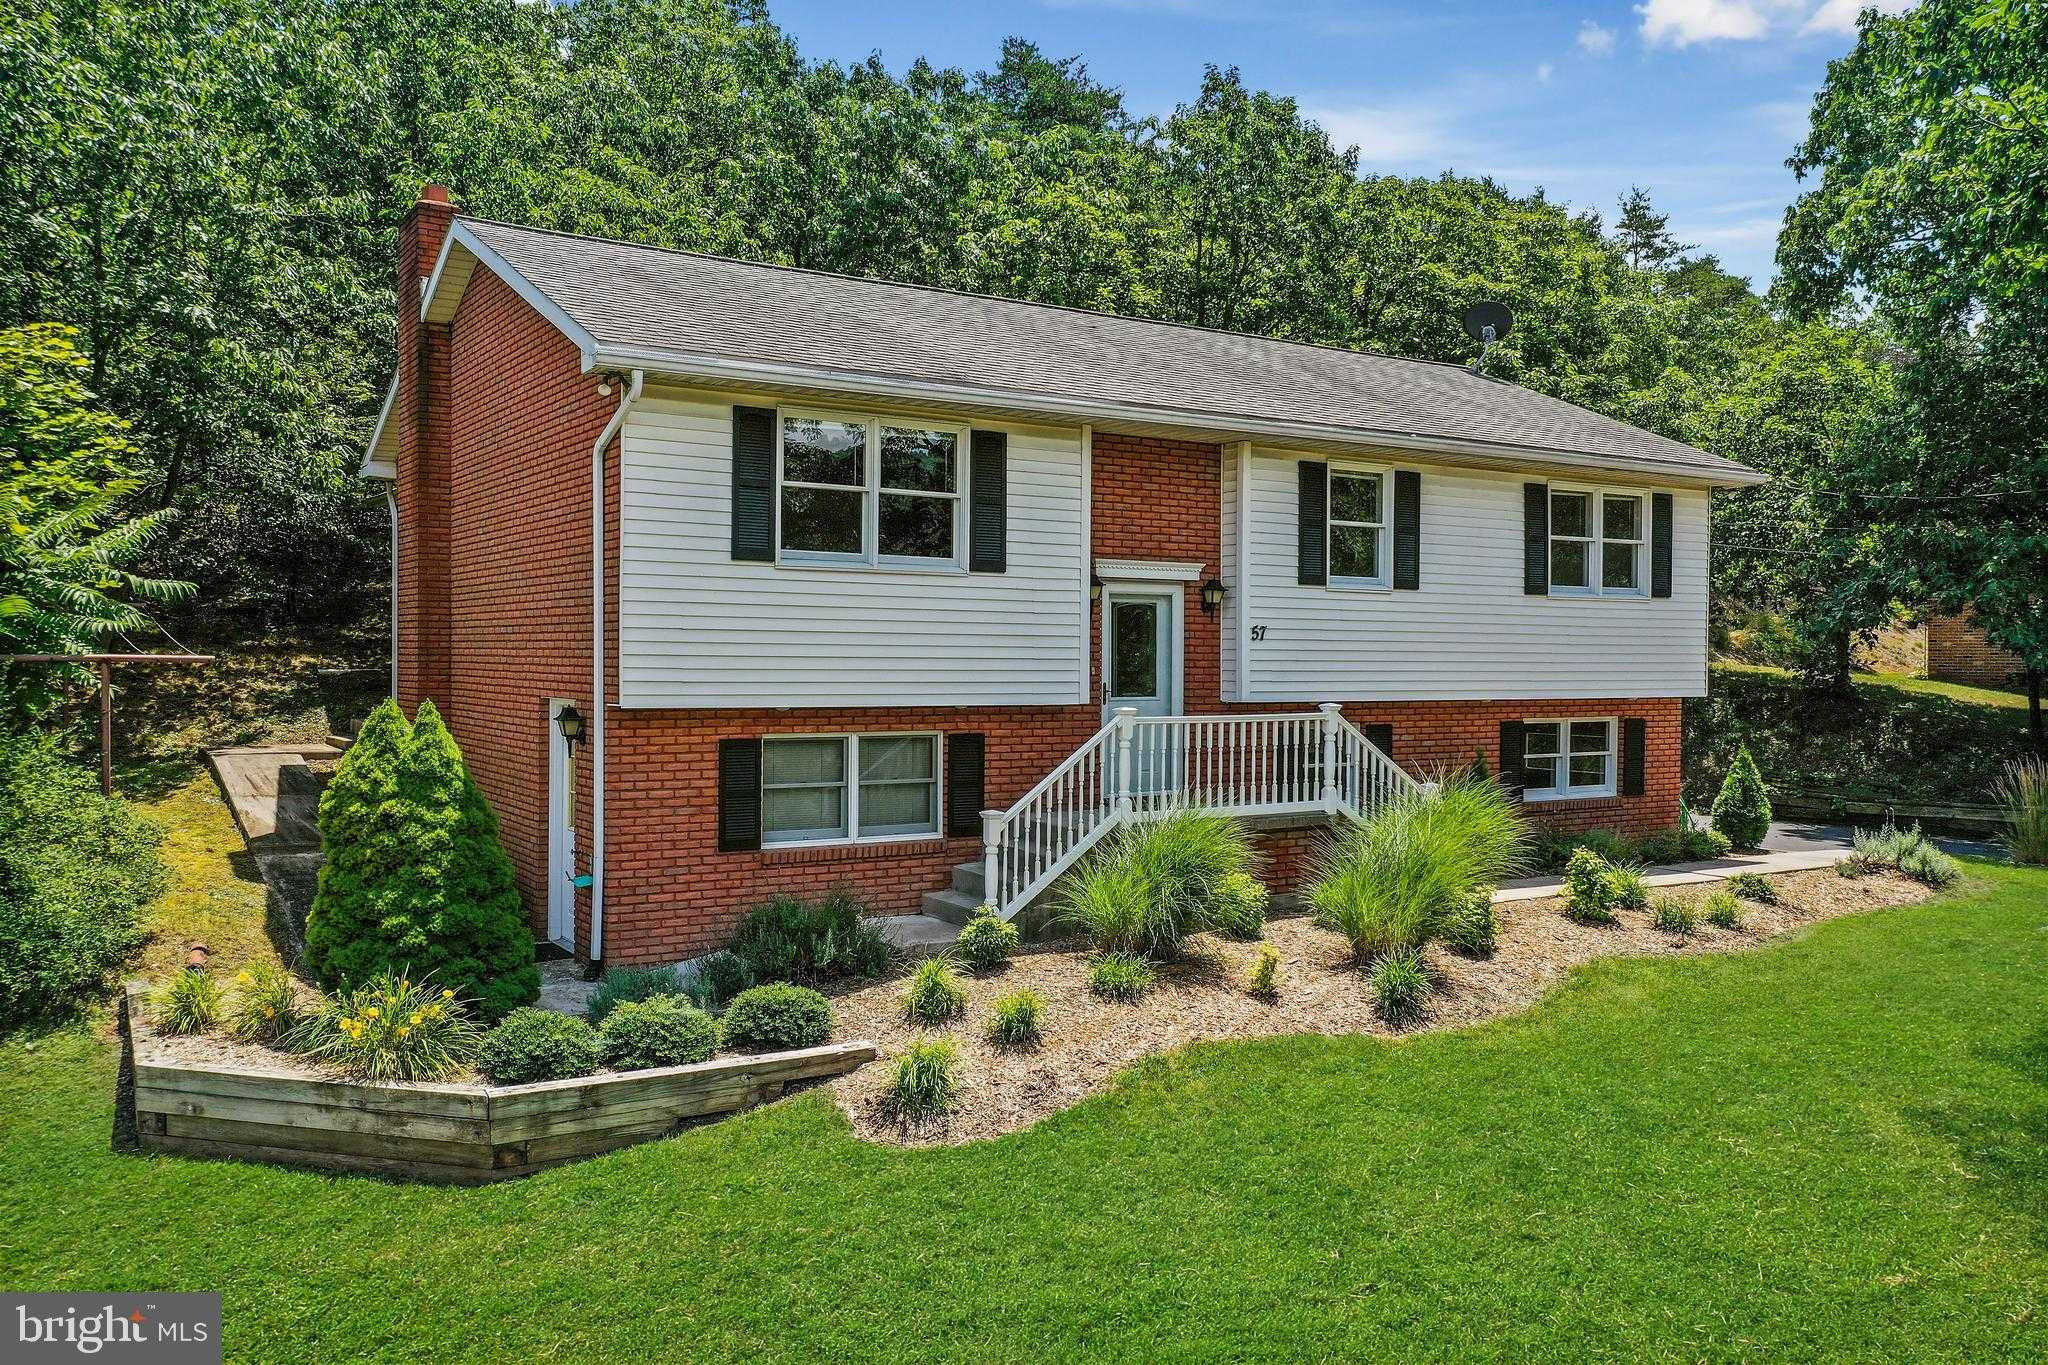 $179,900 - 3Br/2Ba -  for Sale in West Virginia, Wiley Ford